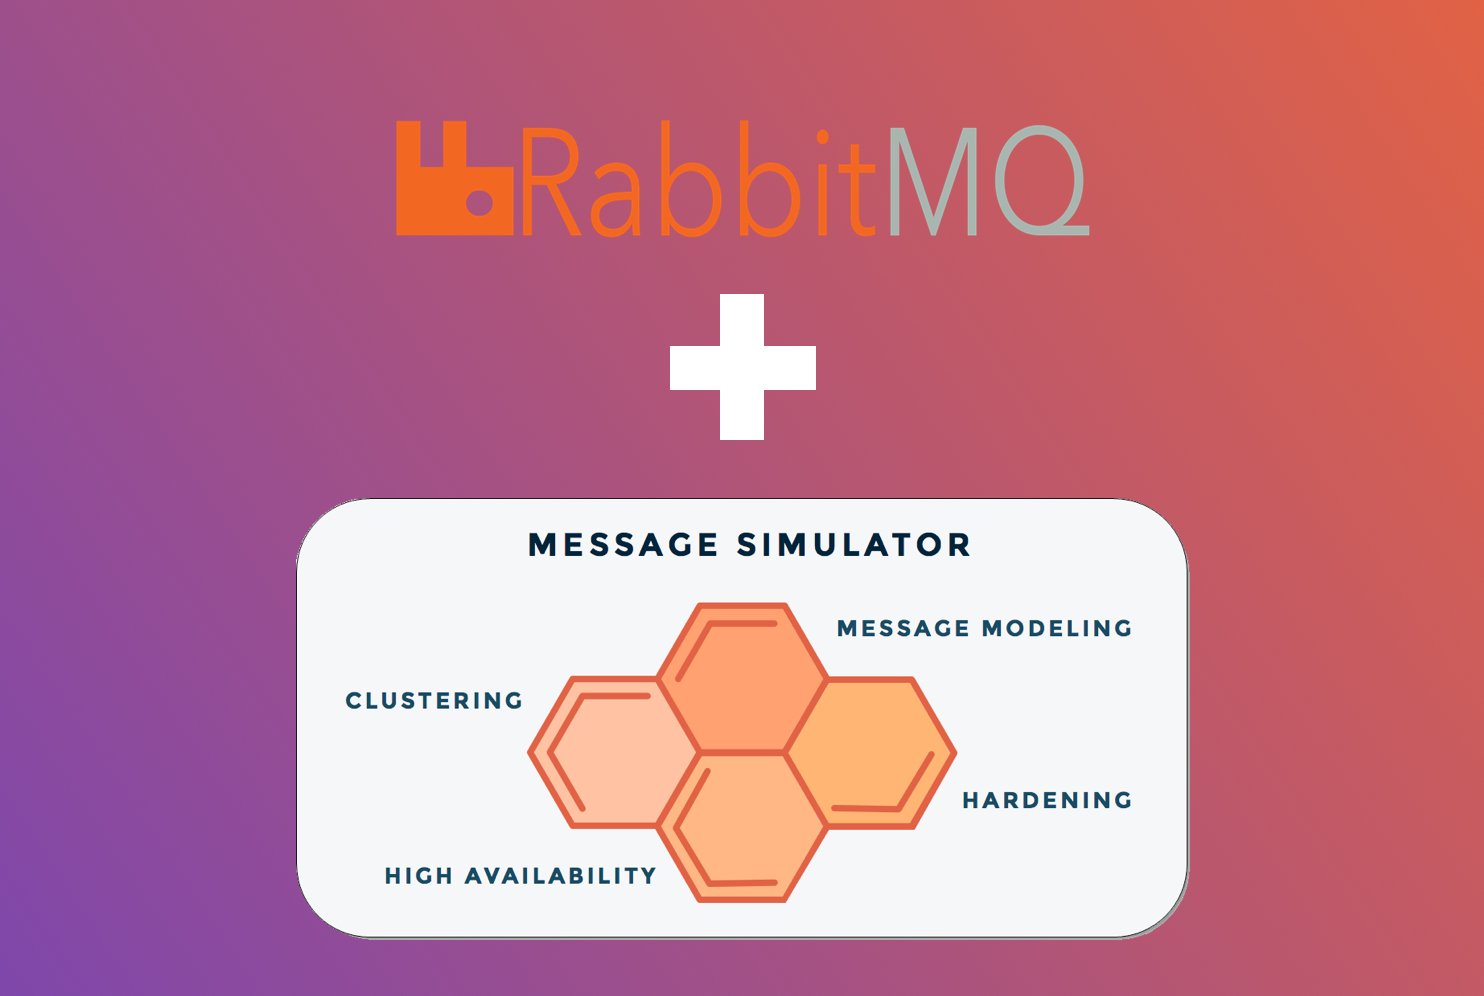 Testing RabbitMQ Clustering with a Message Simulator – Part 2